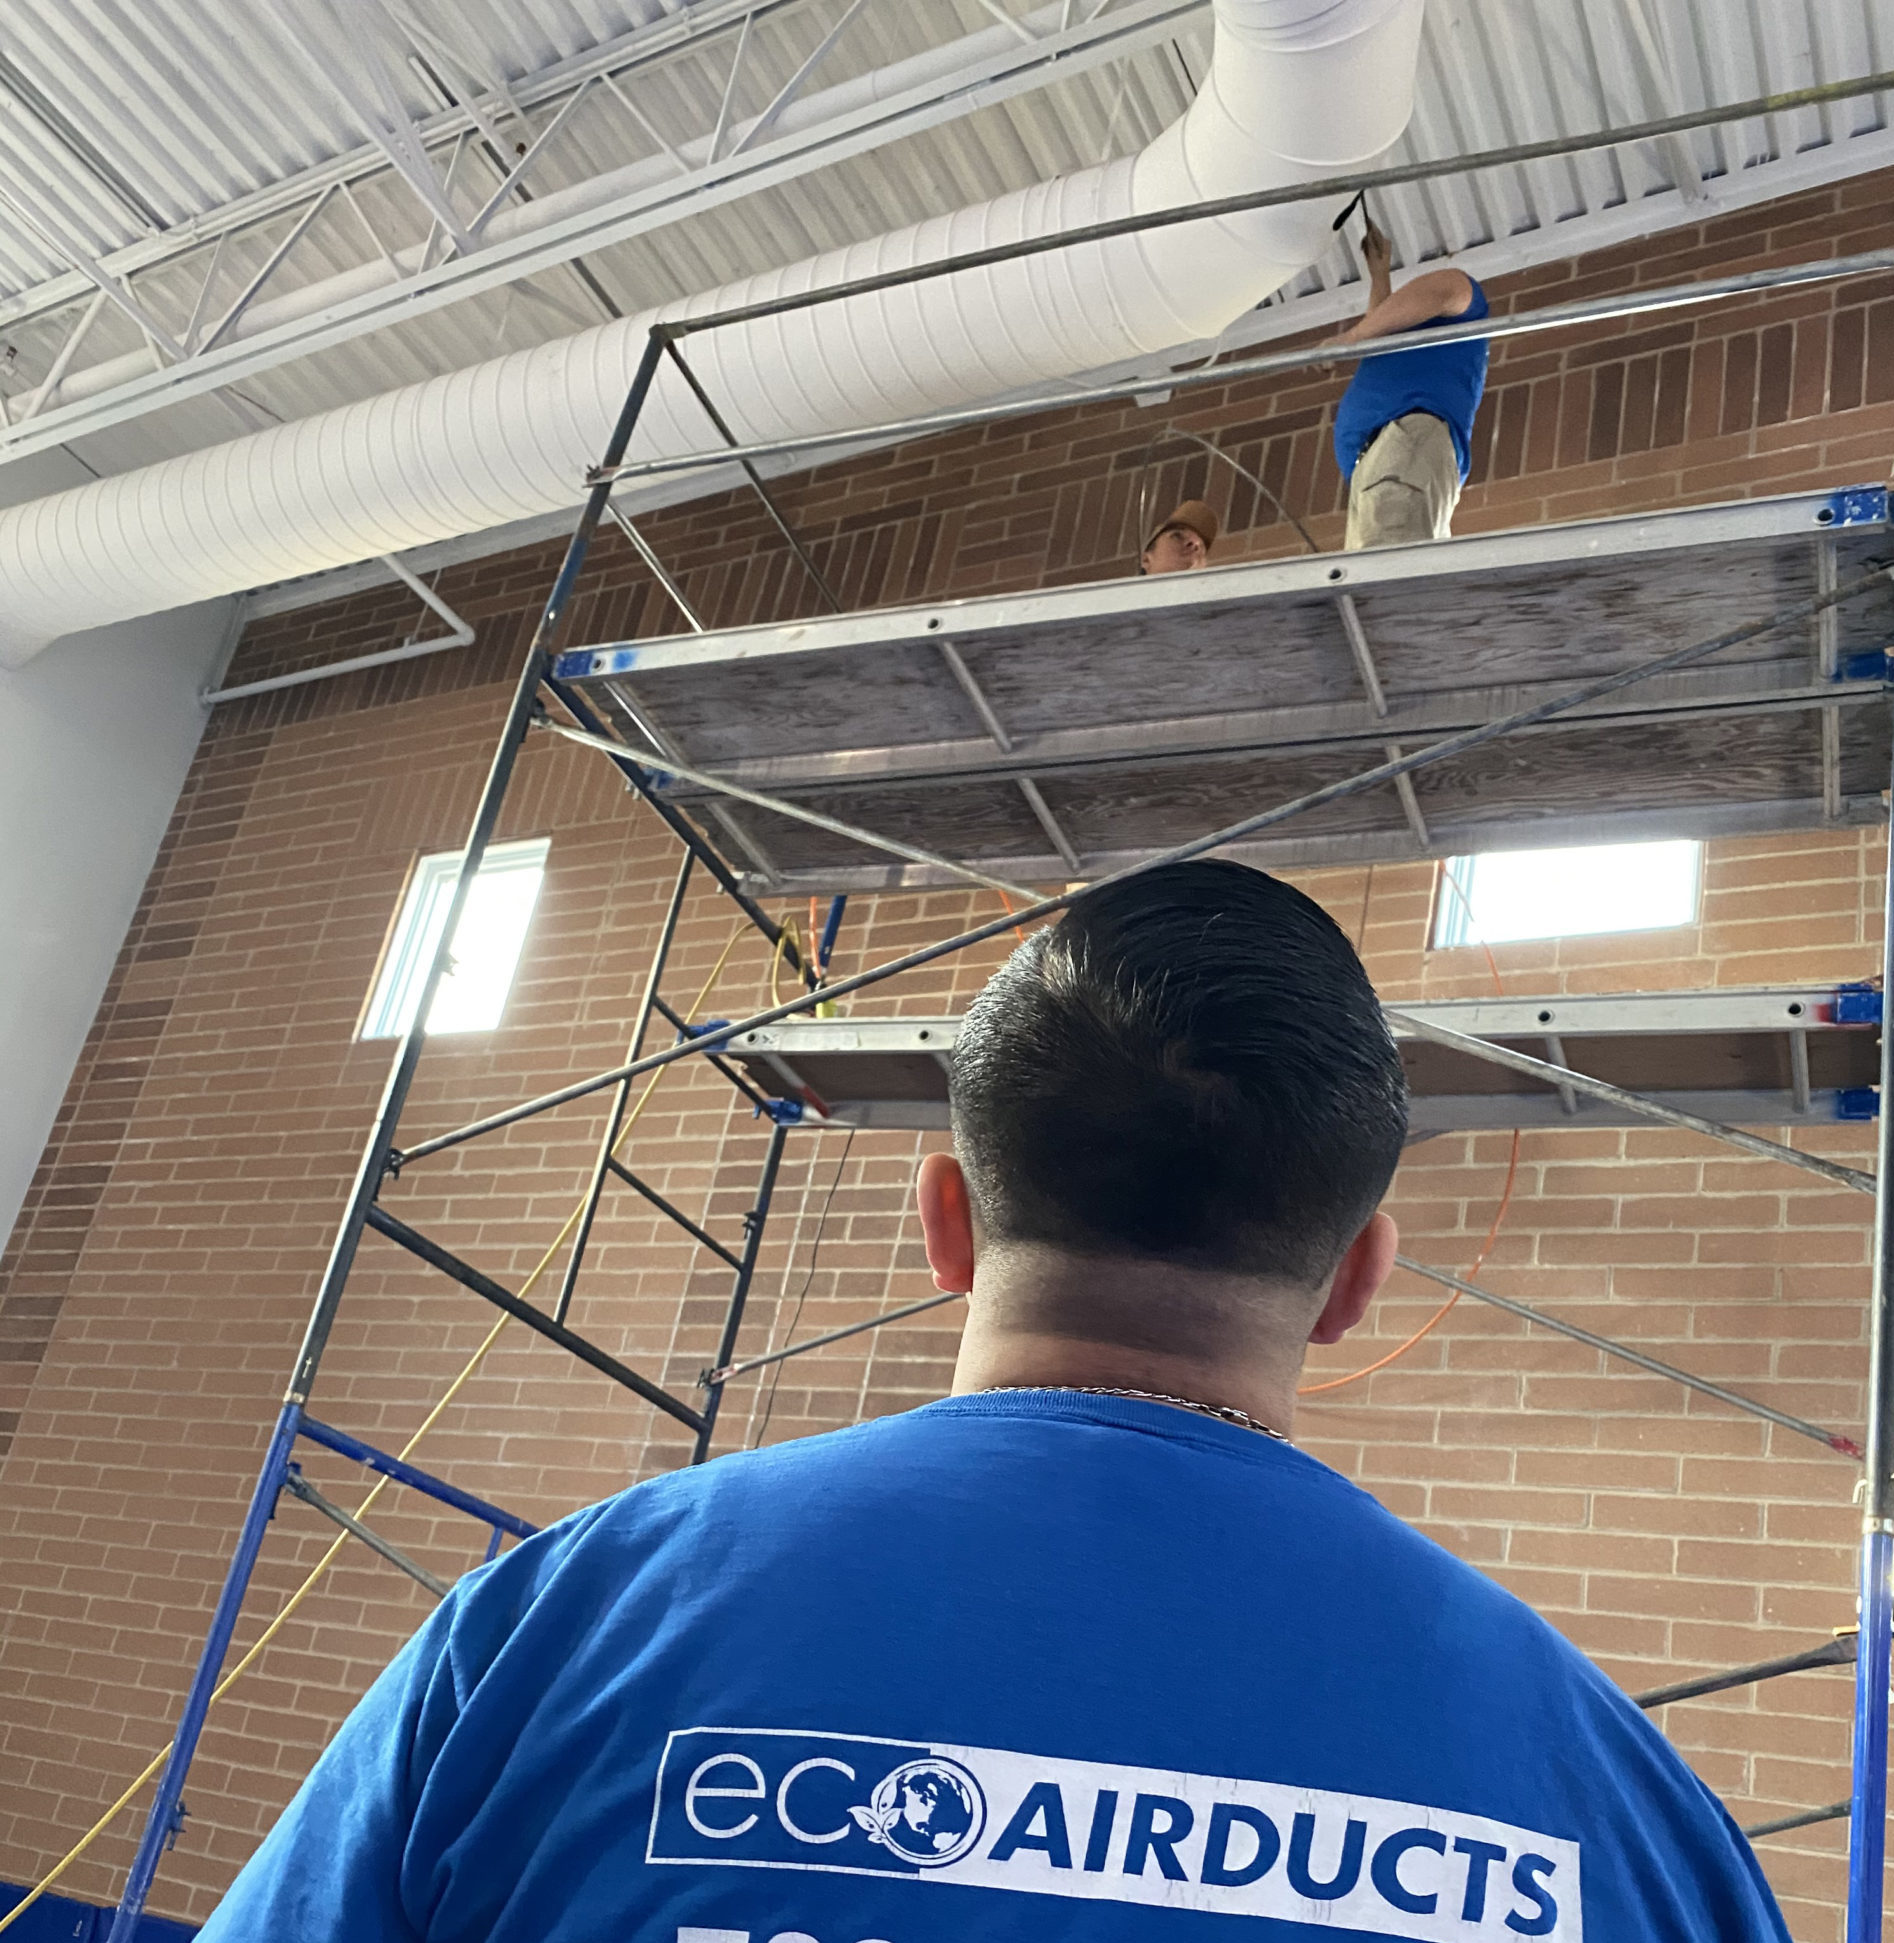 https://schaumburgairducts.com/wp-content/uploads/2020/01/eco-airduct-cleaning-services-technician-scaled-e1578697385781.jpg